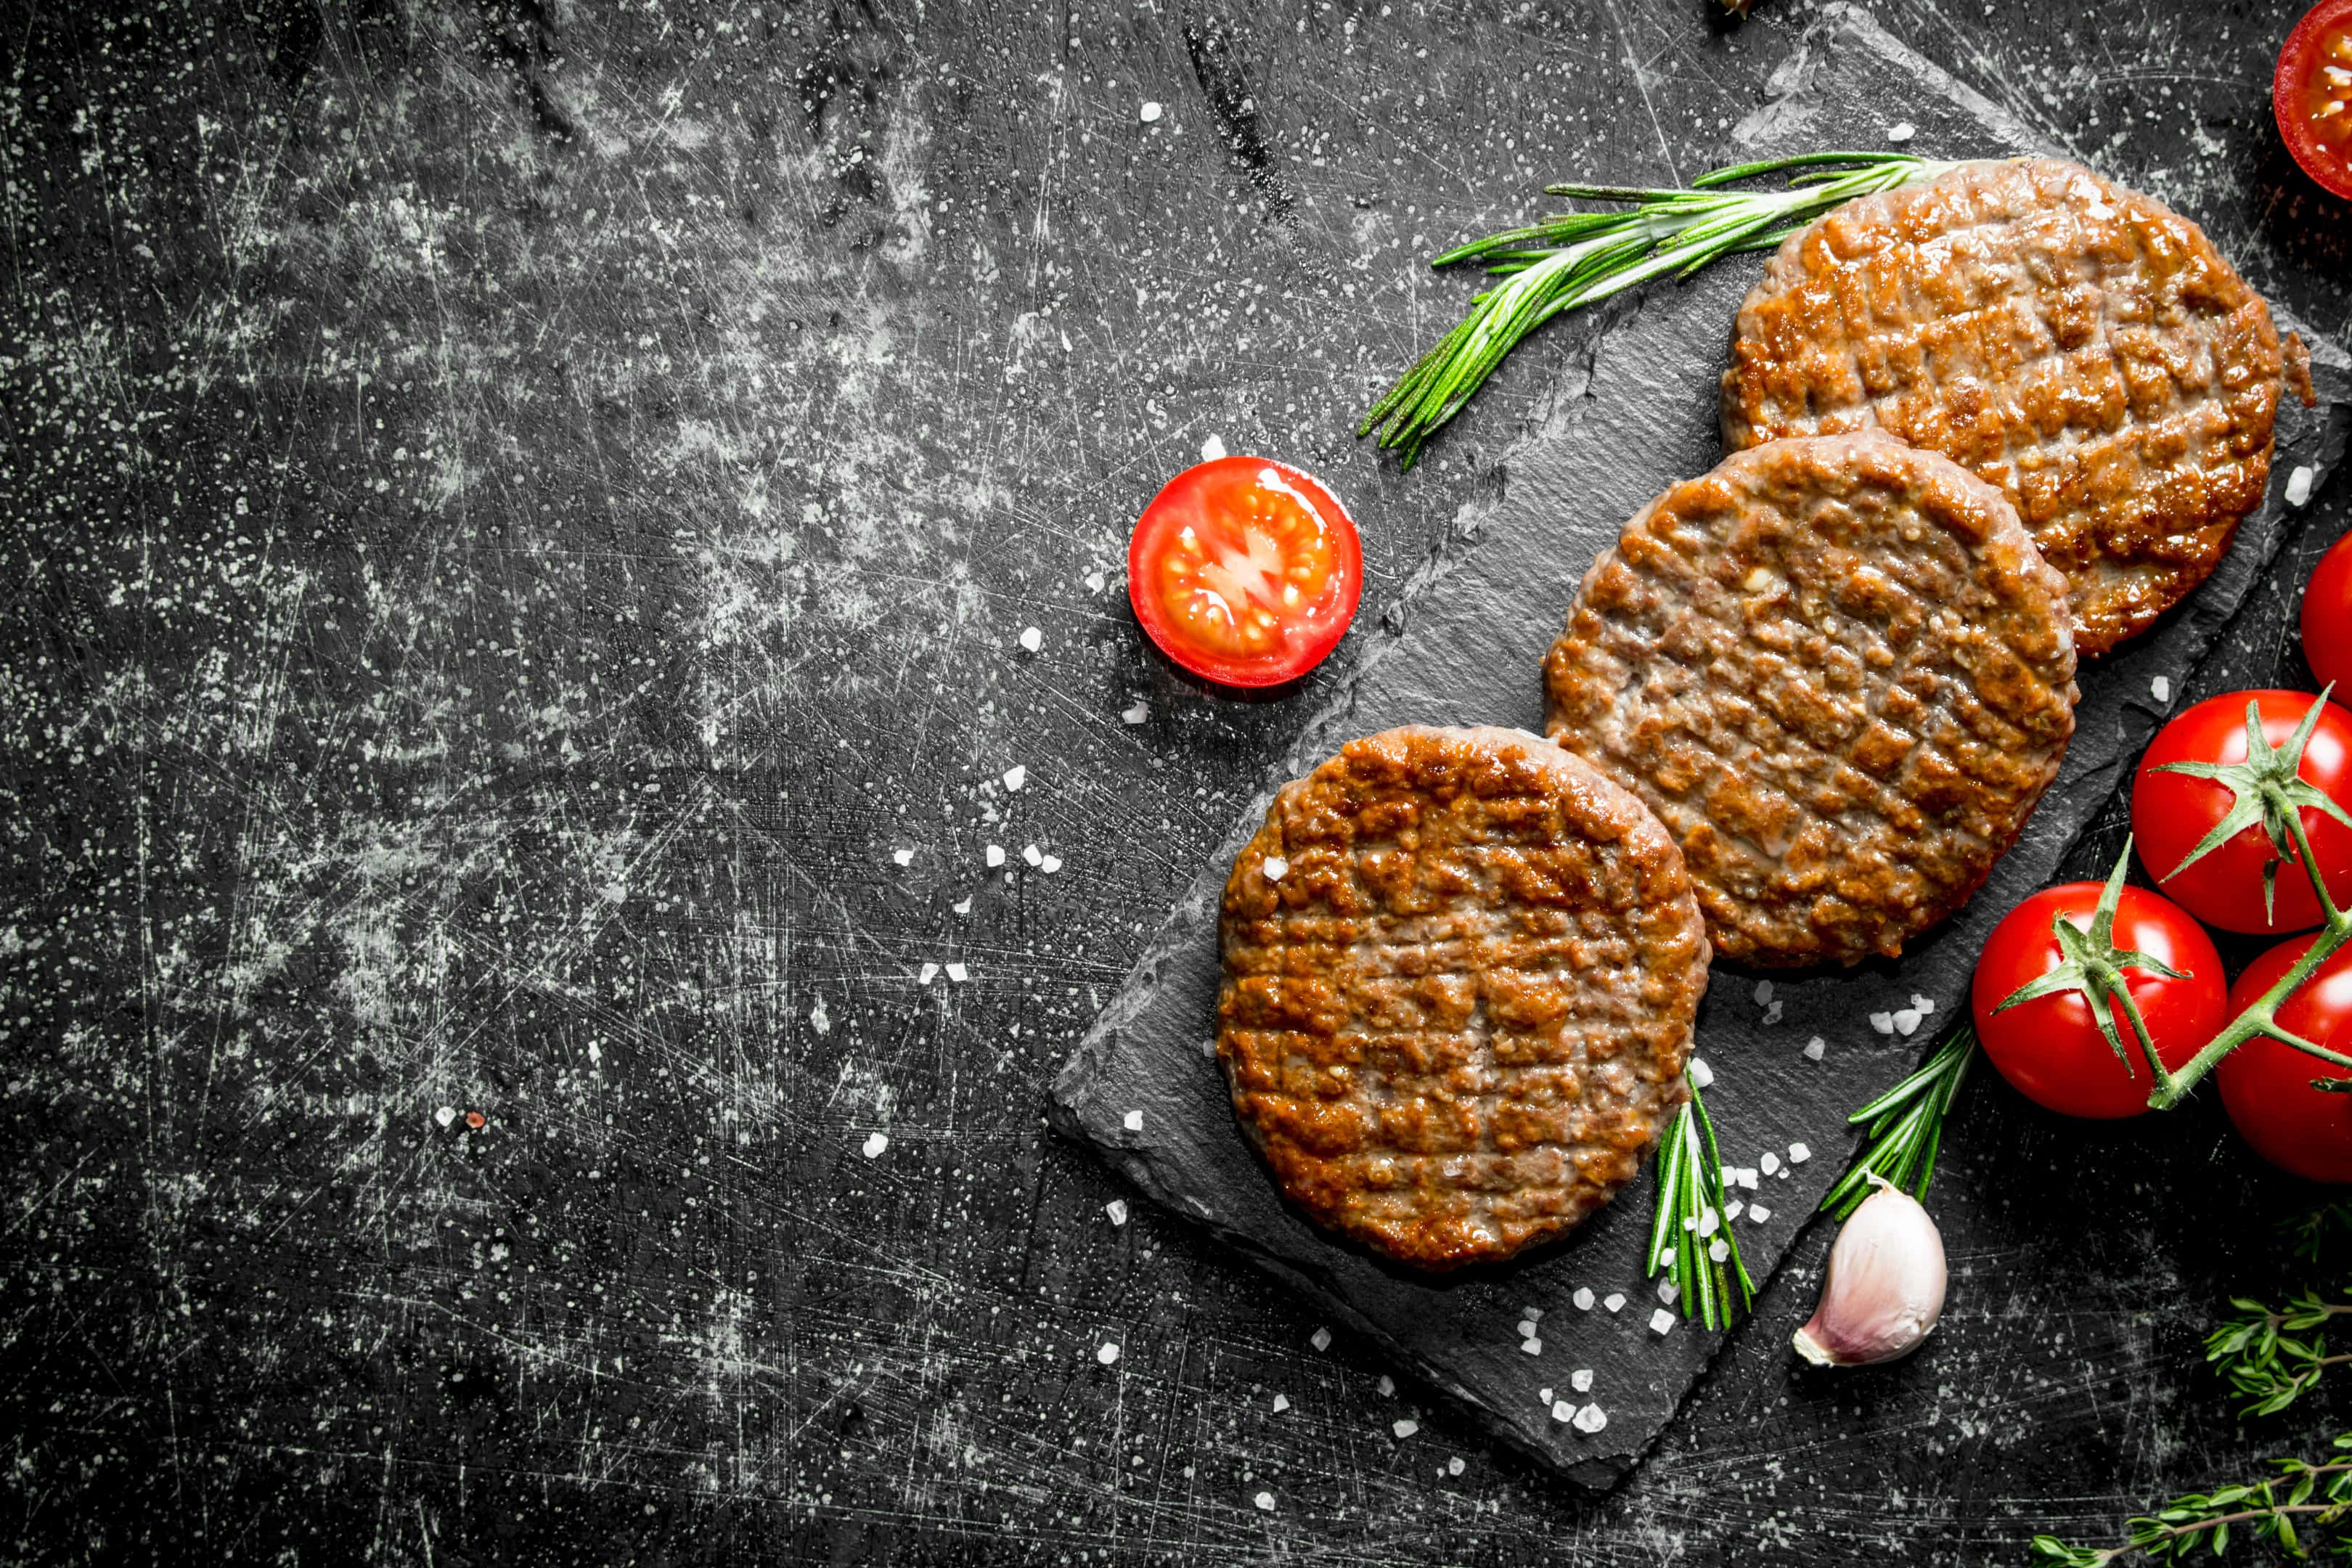 Processed hamburgers with tomatoes on black rustic stone board